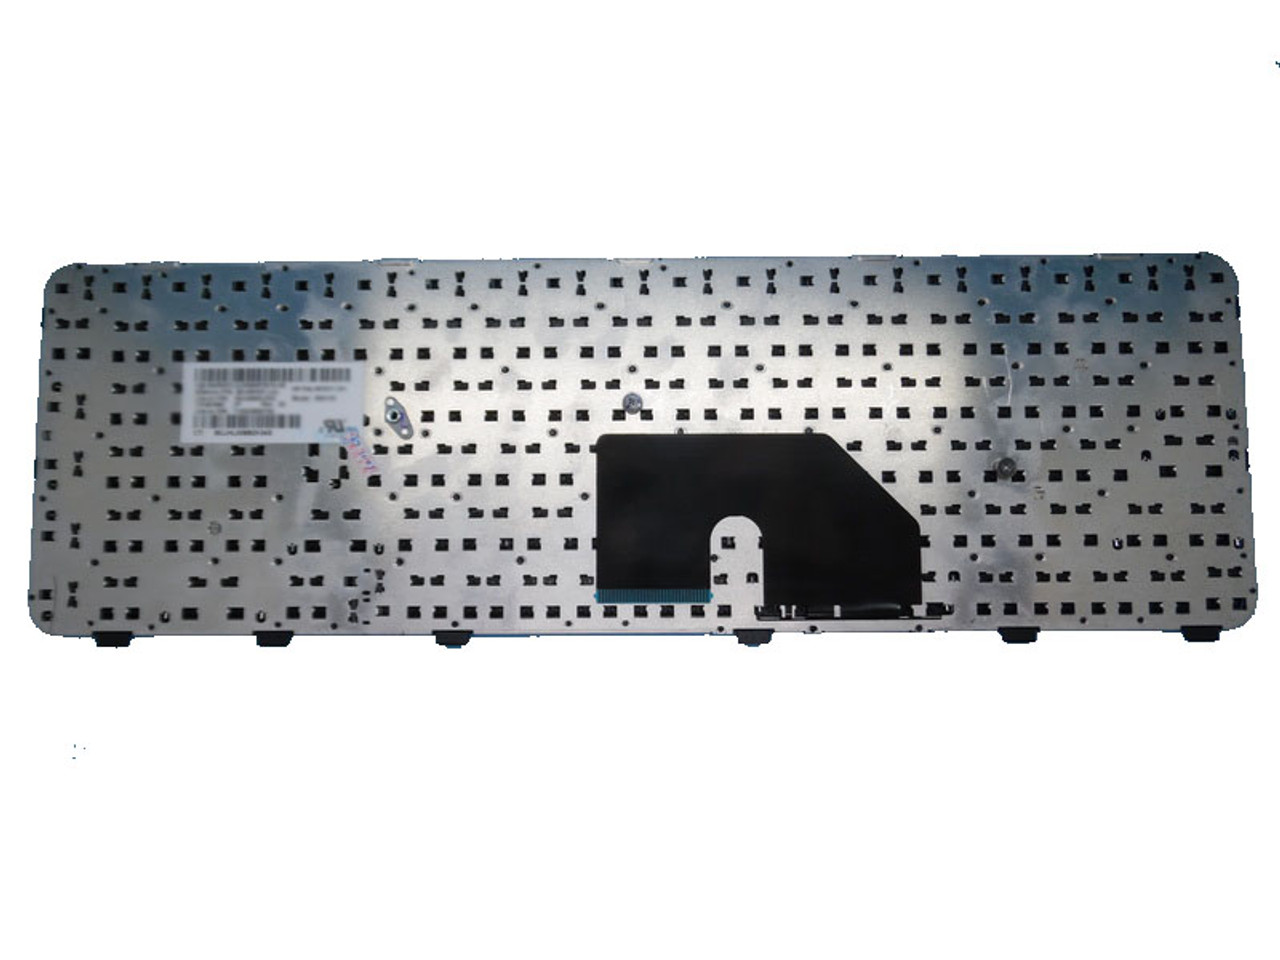 Laptop Keyboard for HP DV6-6000 with Black Frame Black GR German 634139-041 NSK-HW0US 640436-041 665326-041